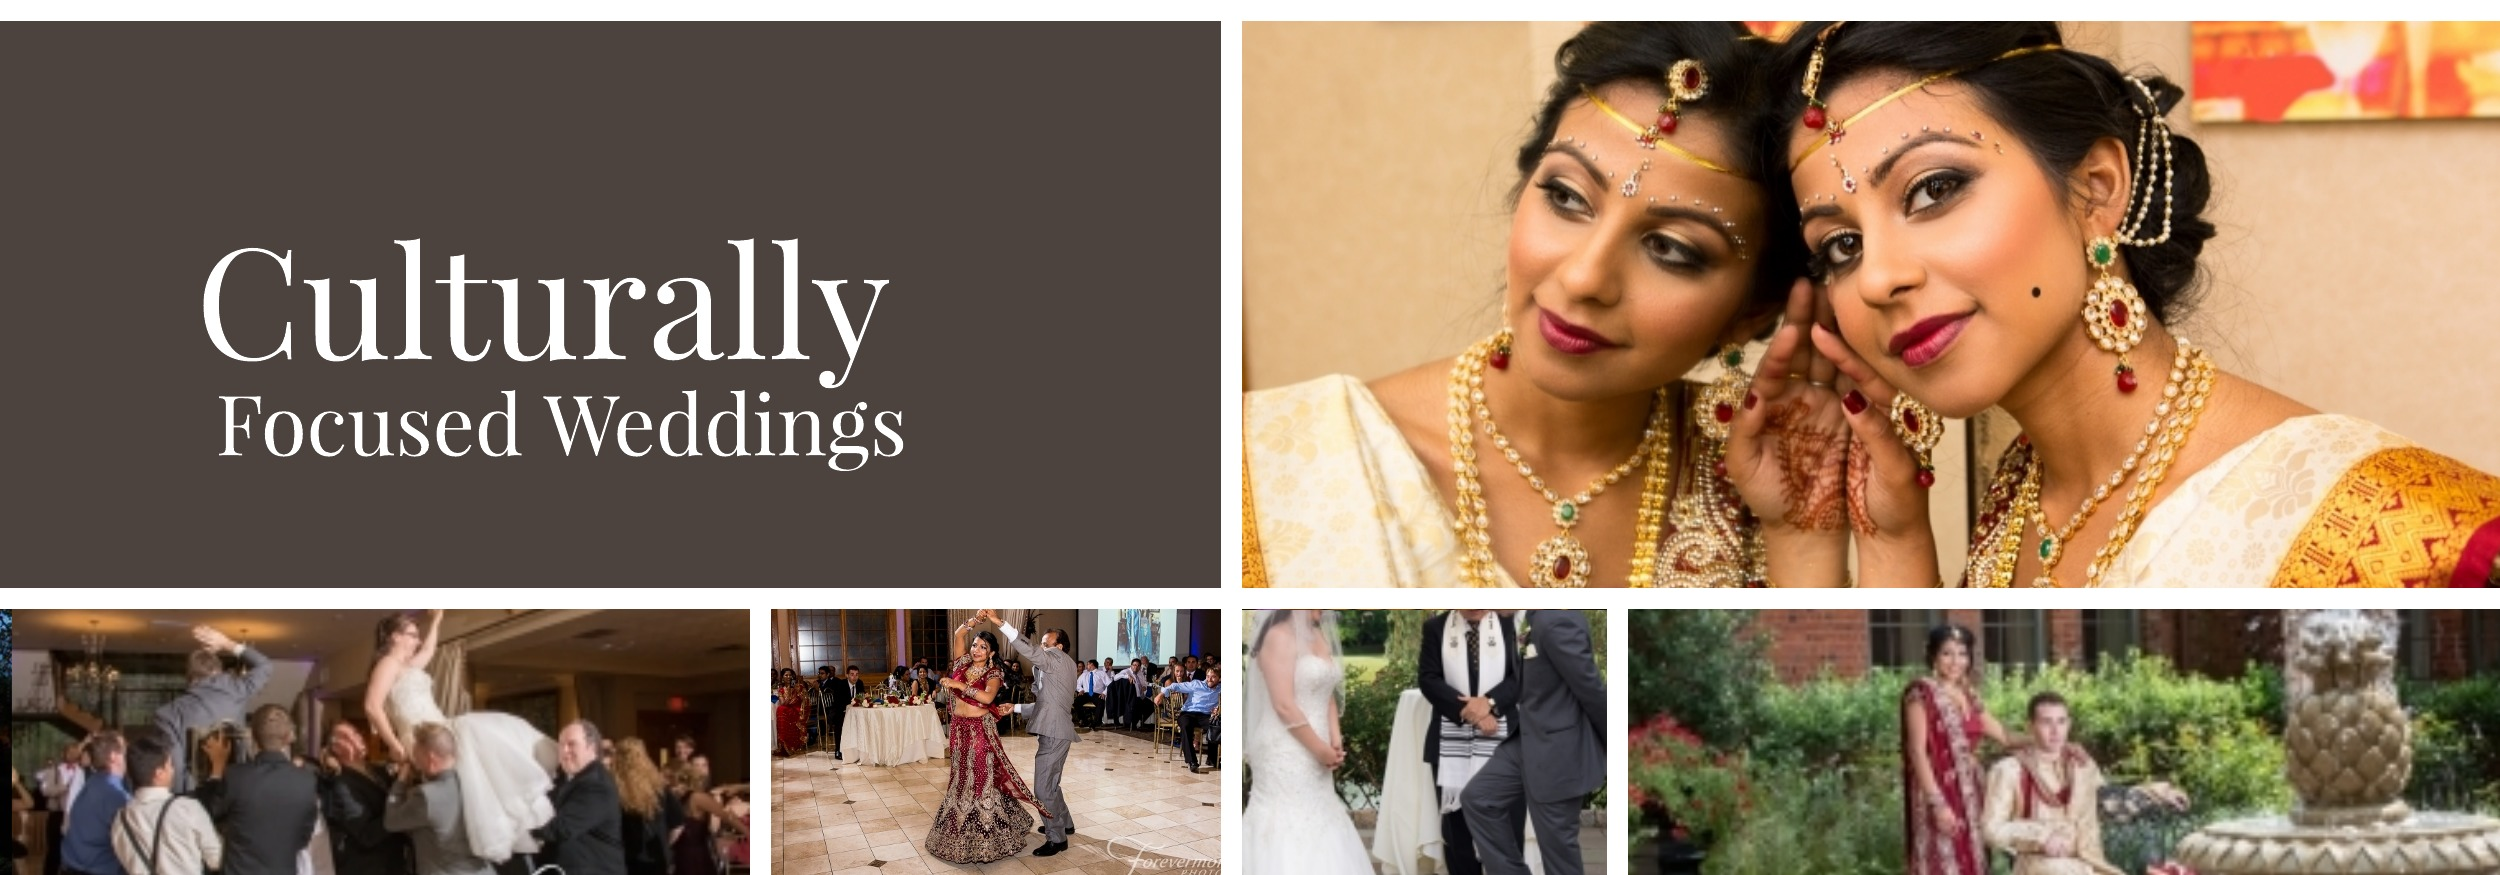 culturally focused wedding reception at Talamore